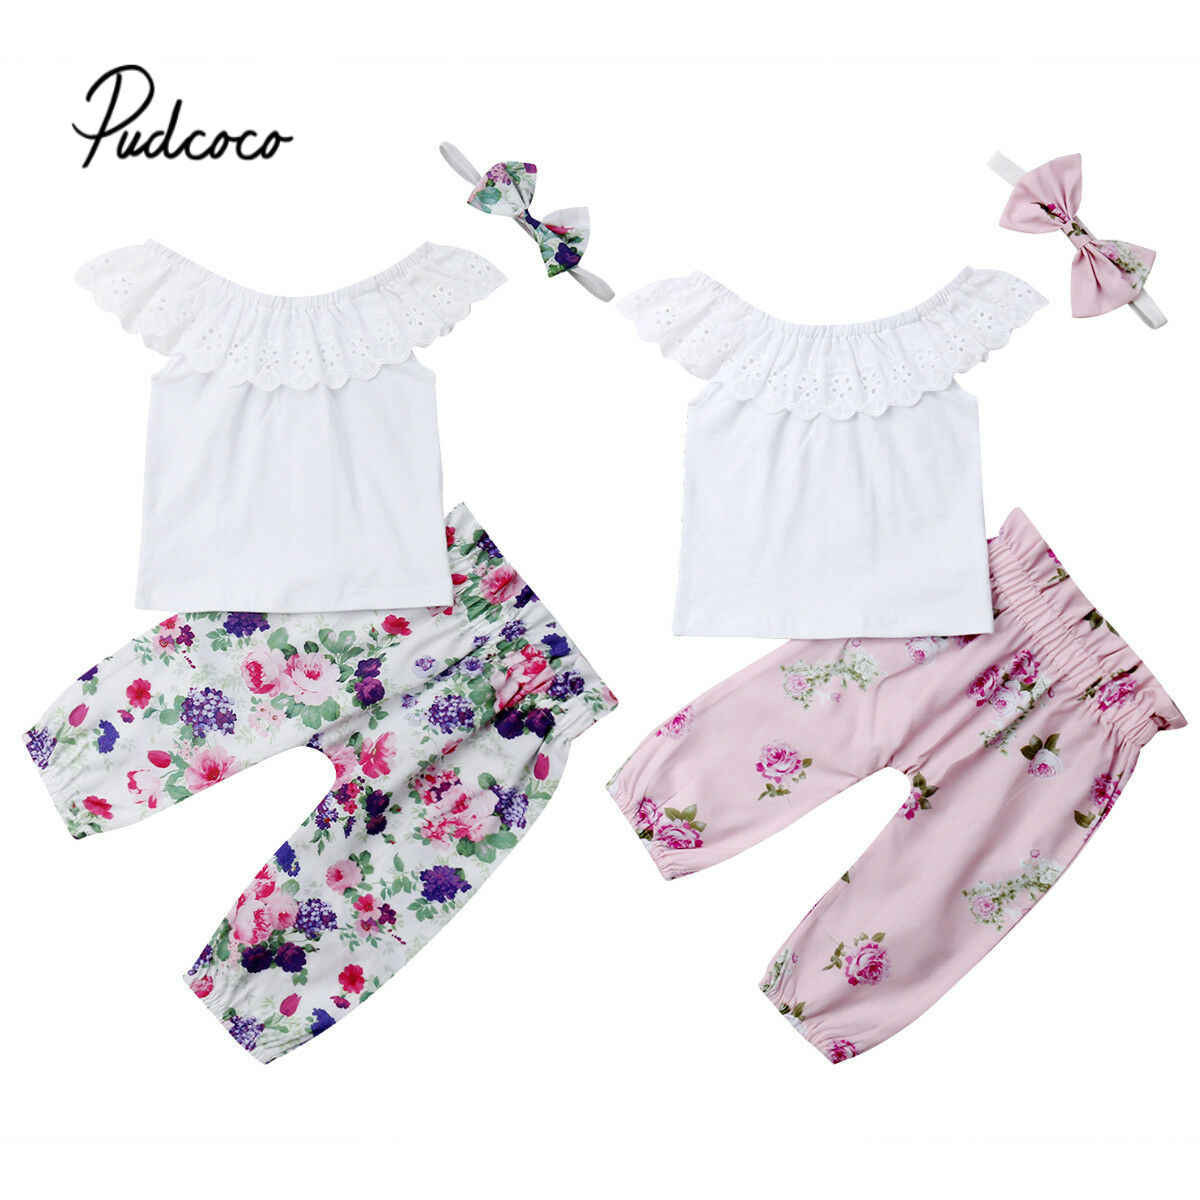 6dcb4196e Detail Feedback Questions about pudcoco Cute Infant Baby Lace Sleeve ...